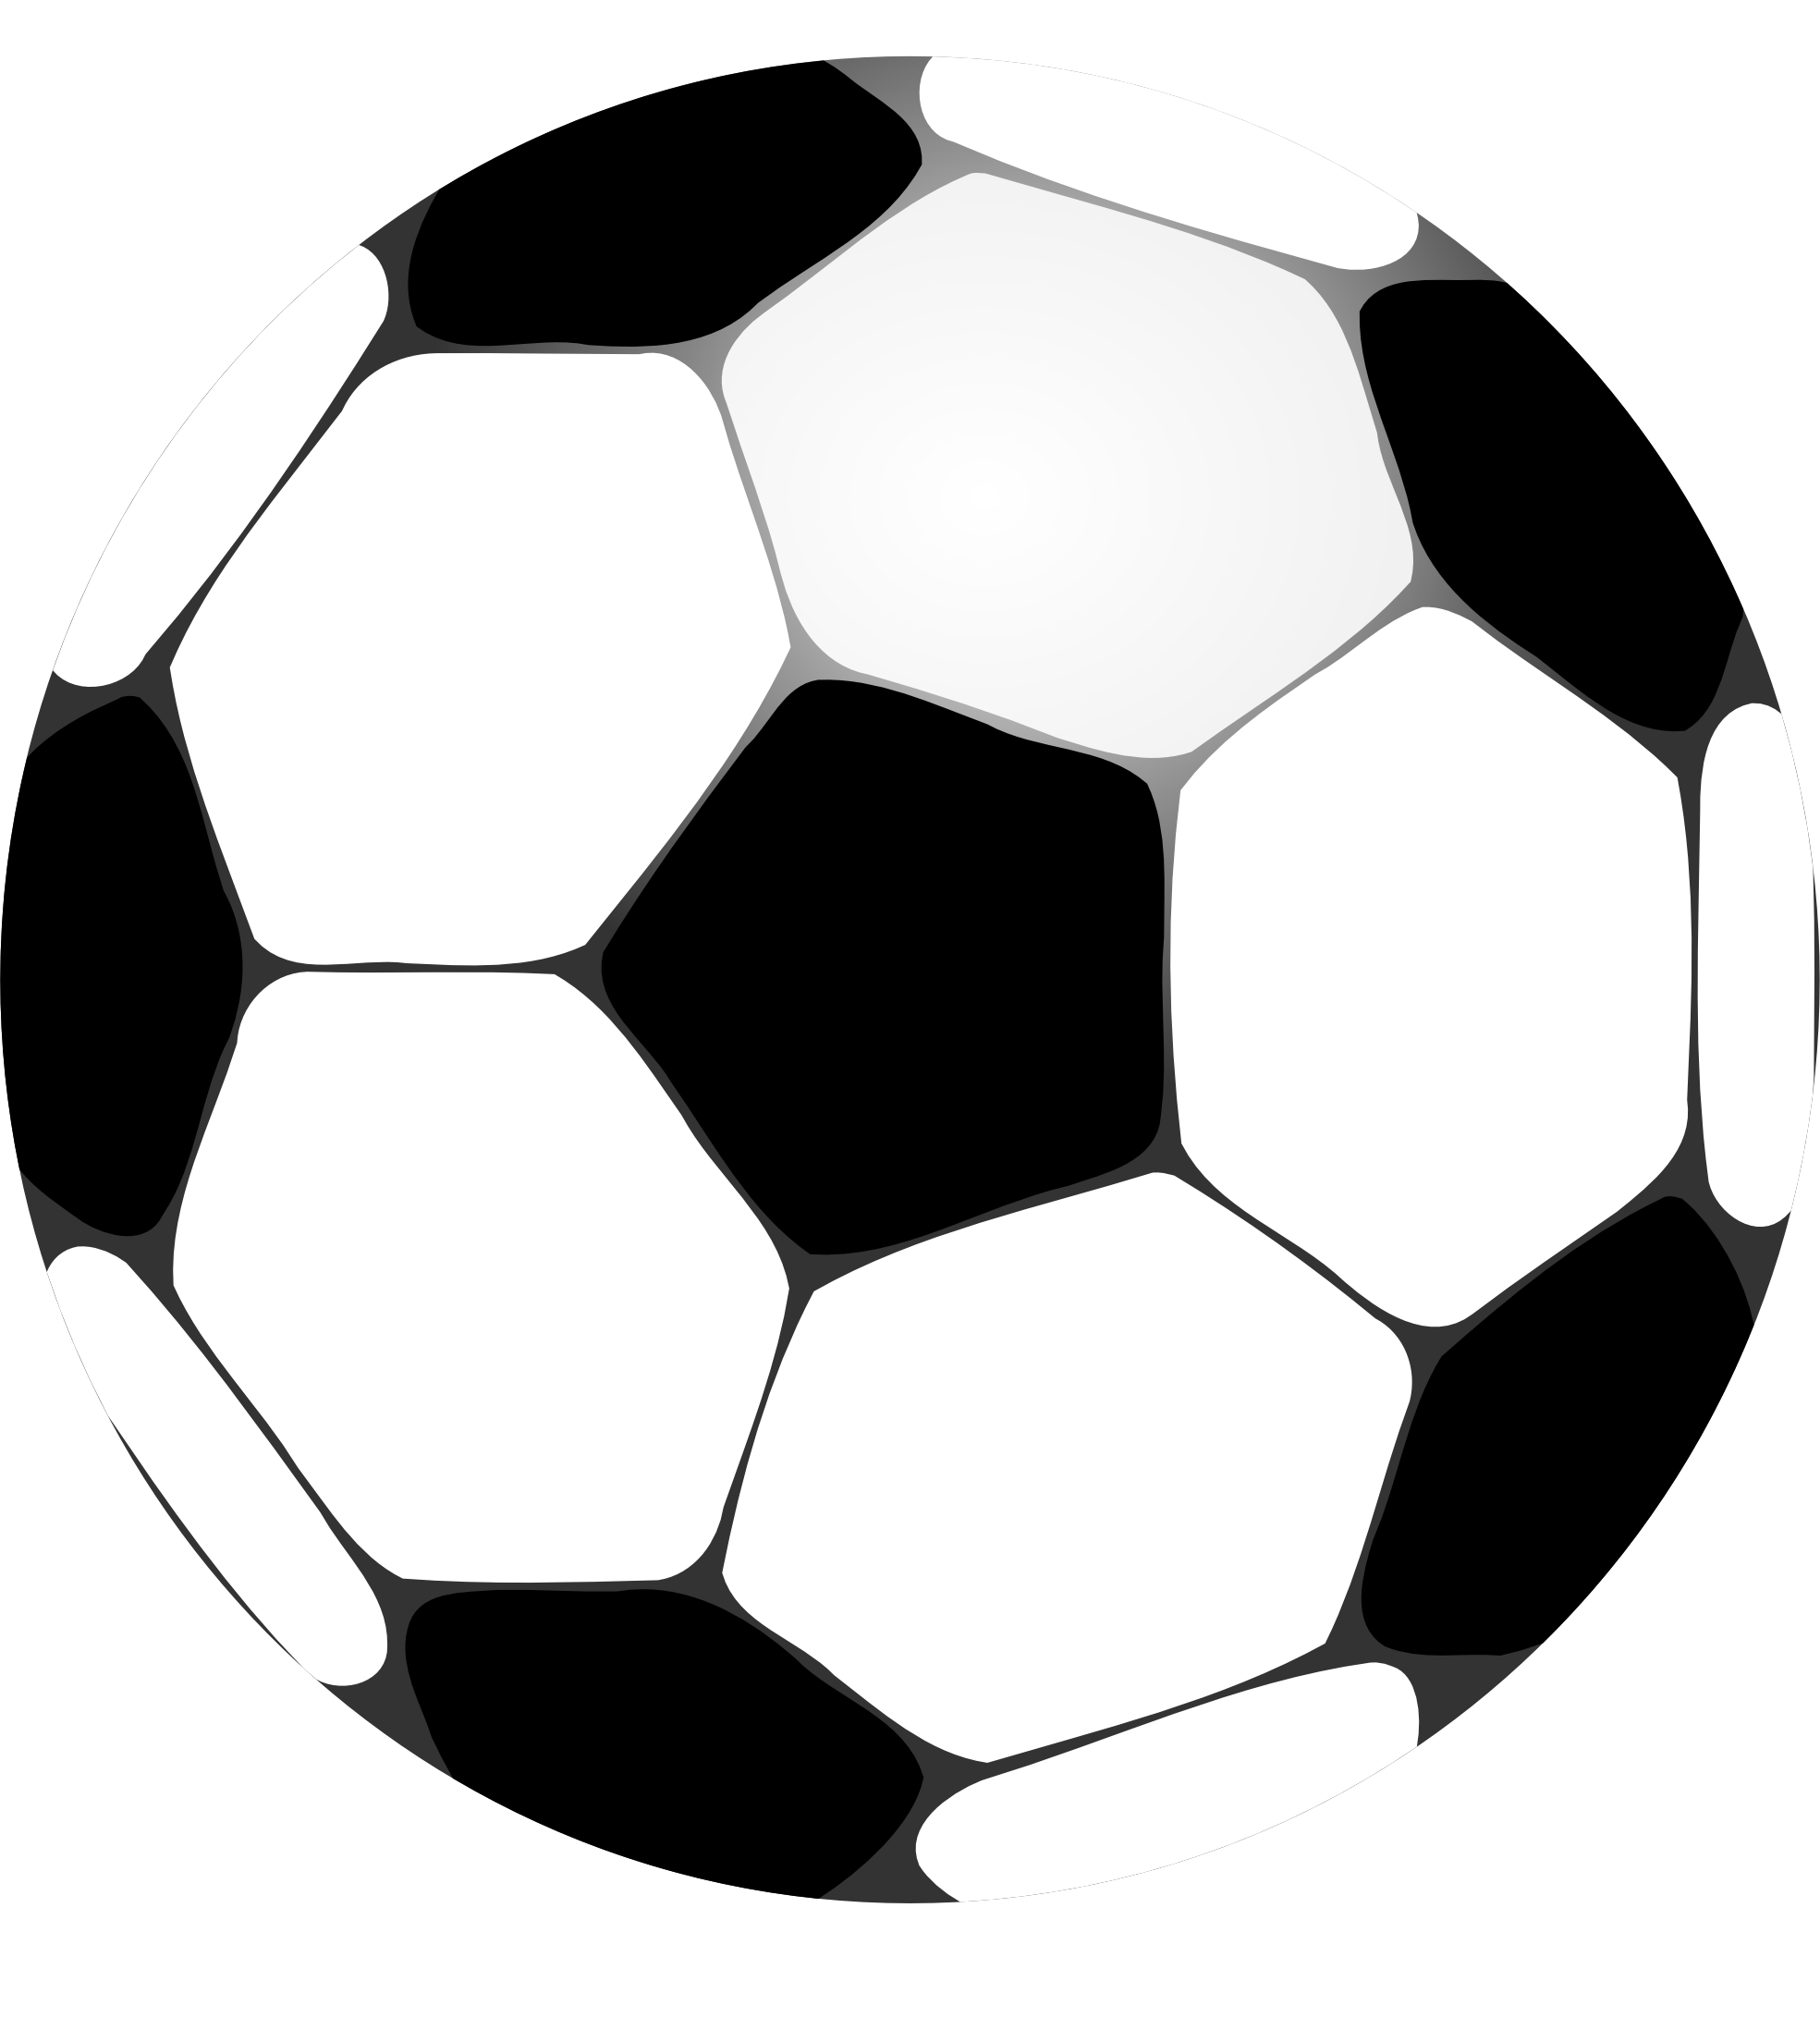 Free football game black and white clipart clip royalty free library soccer ball clip art | mundial | Pinterest | Soccer ball and Clip art clip royalty free library